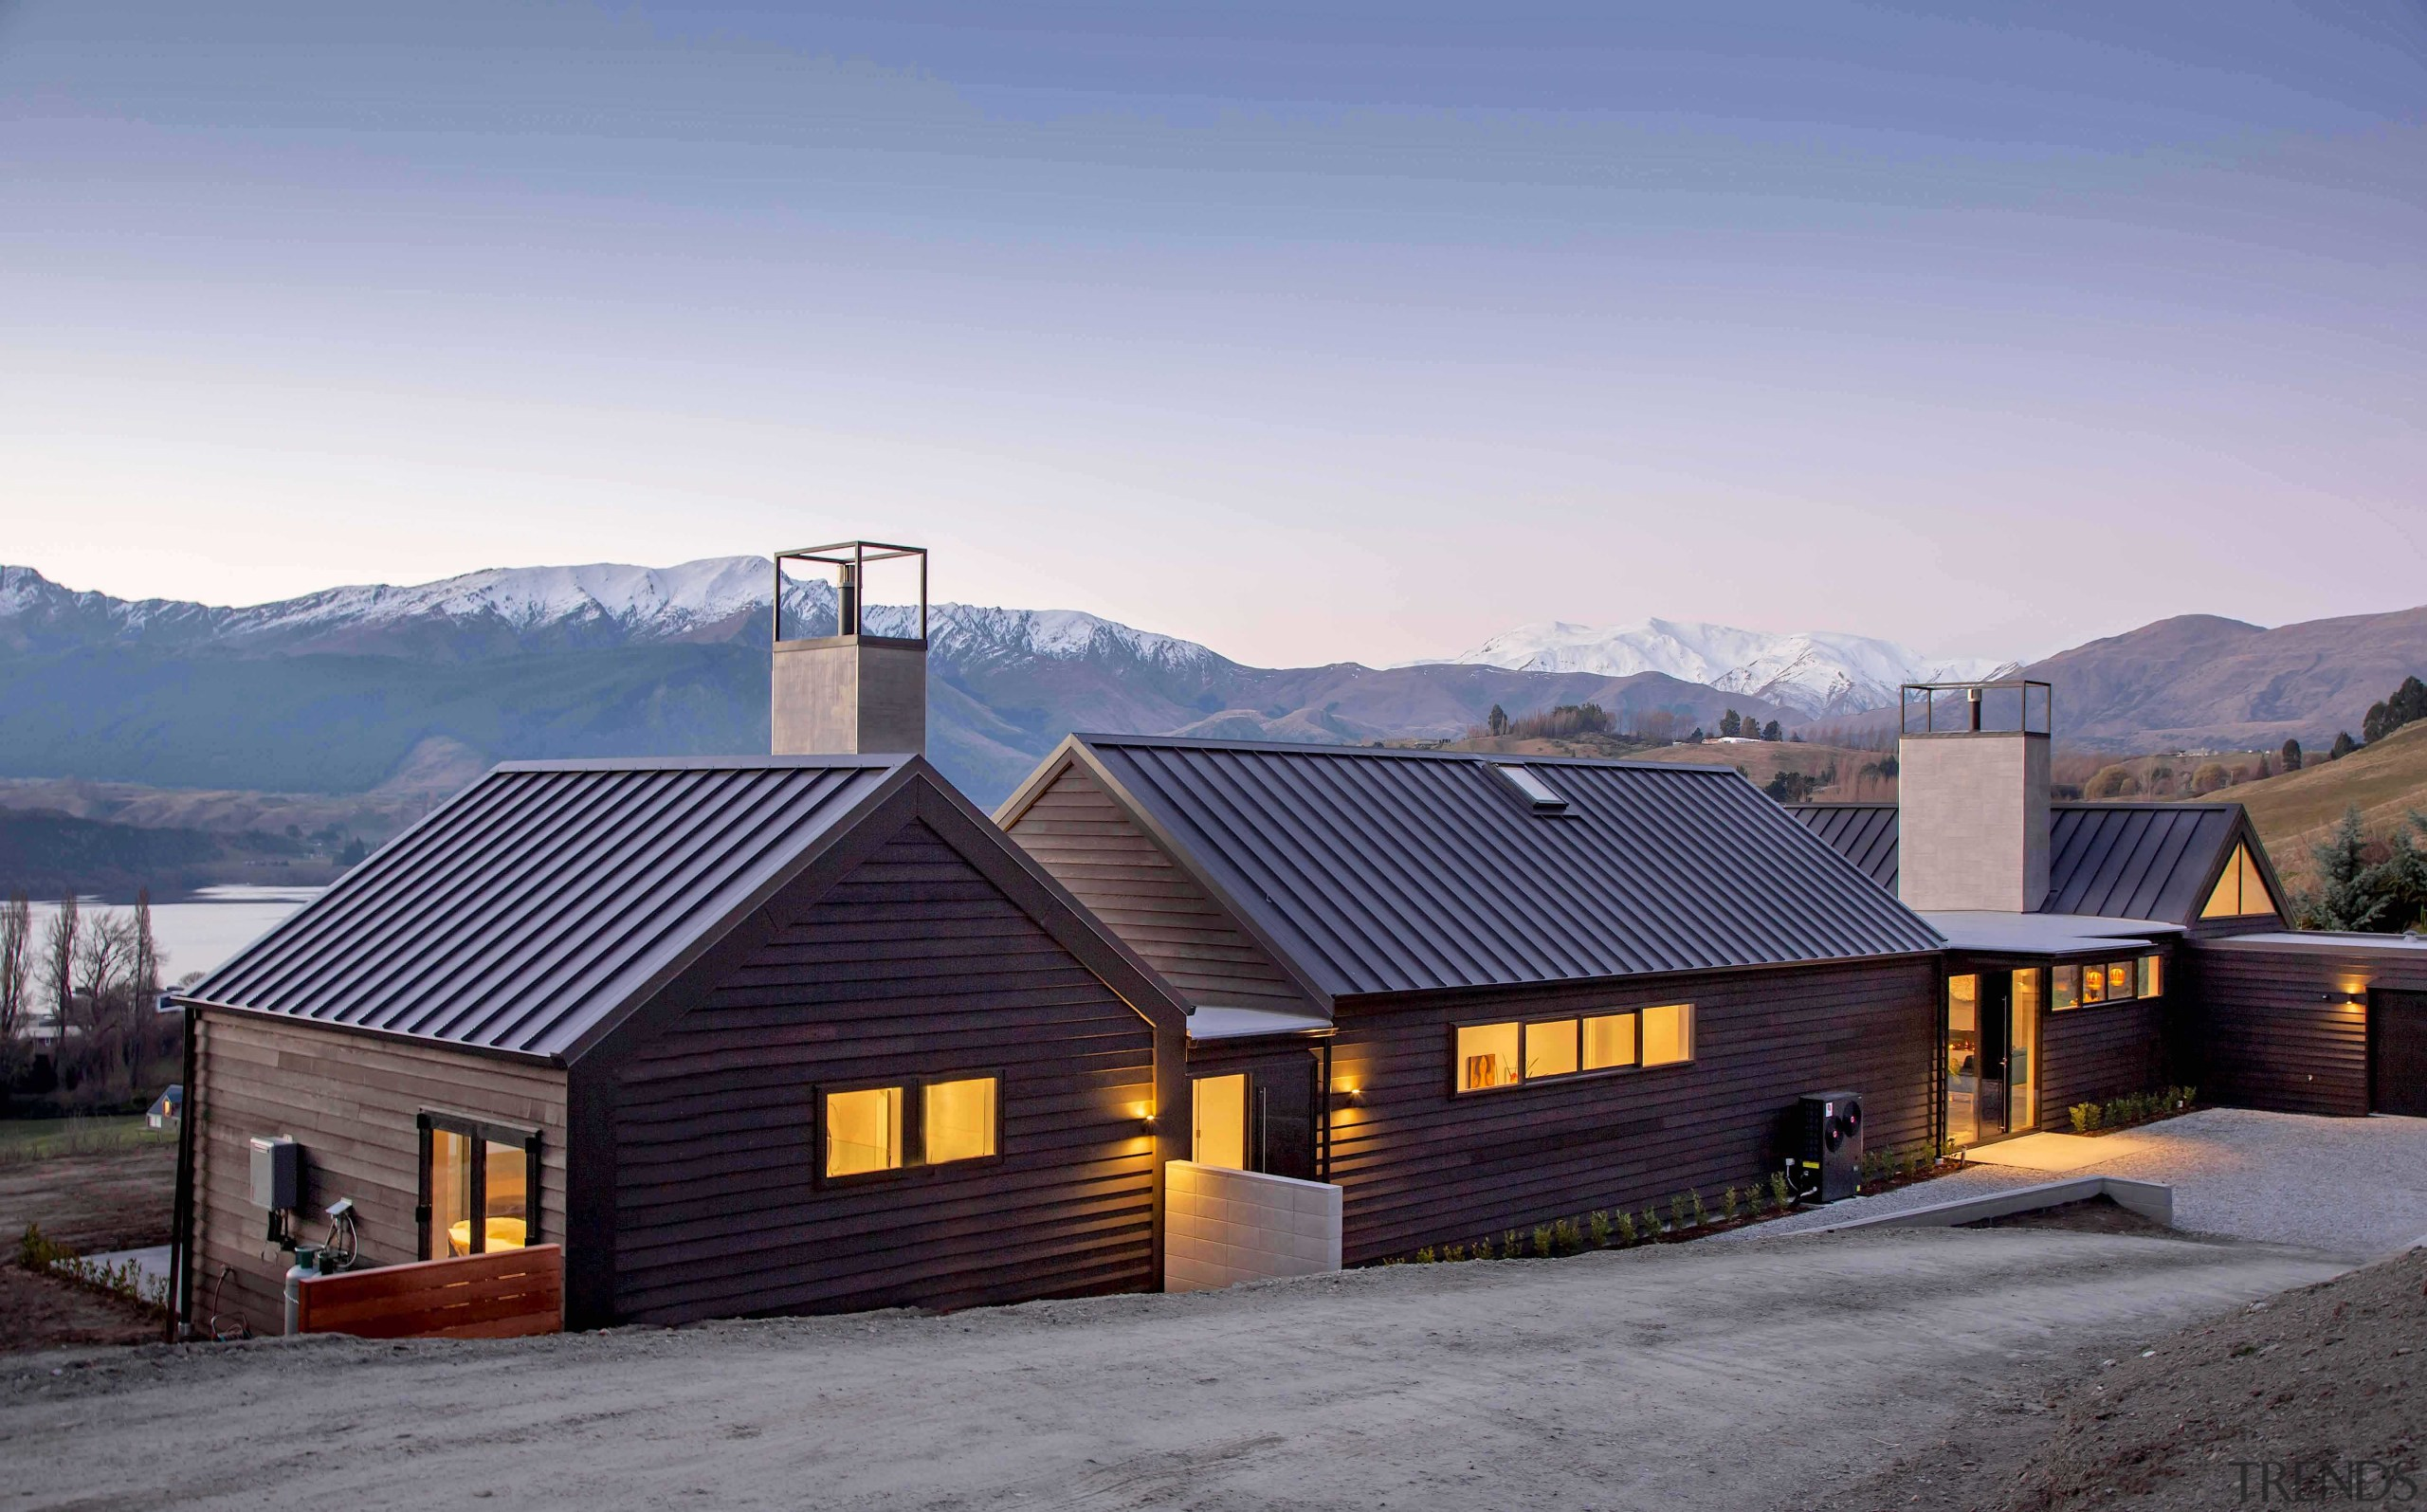 Hofmans Architects / David Reid Homes Queenstown  – architecture, building, cloud, cottage, estate, farmhouse, fell, highland, hill station, home, house, landscape, log cabin, mountain, mountain range, property, real estate, residential area, roof, rural area, siding, sky, snow, tree, vacation, winter, teal